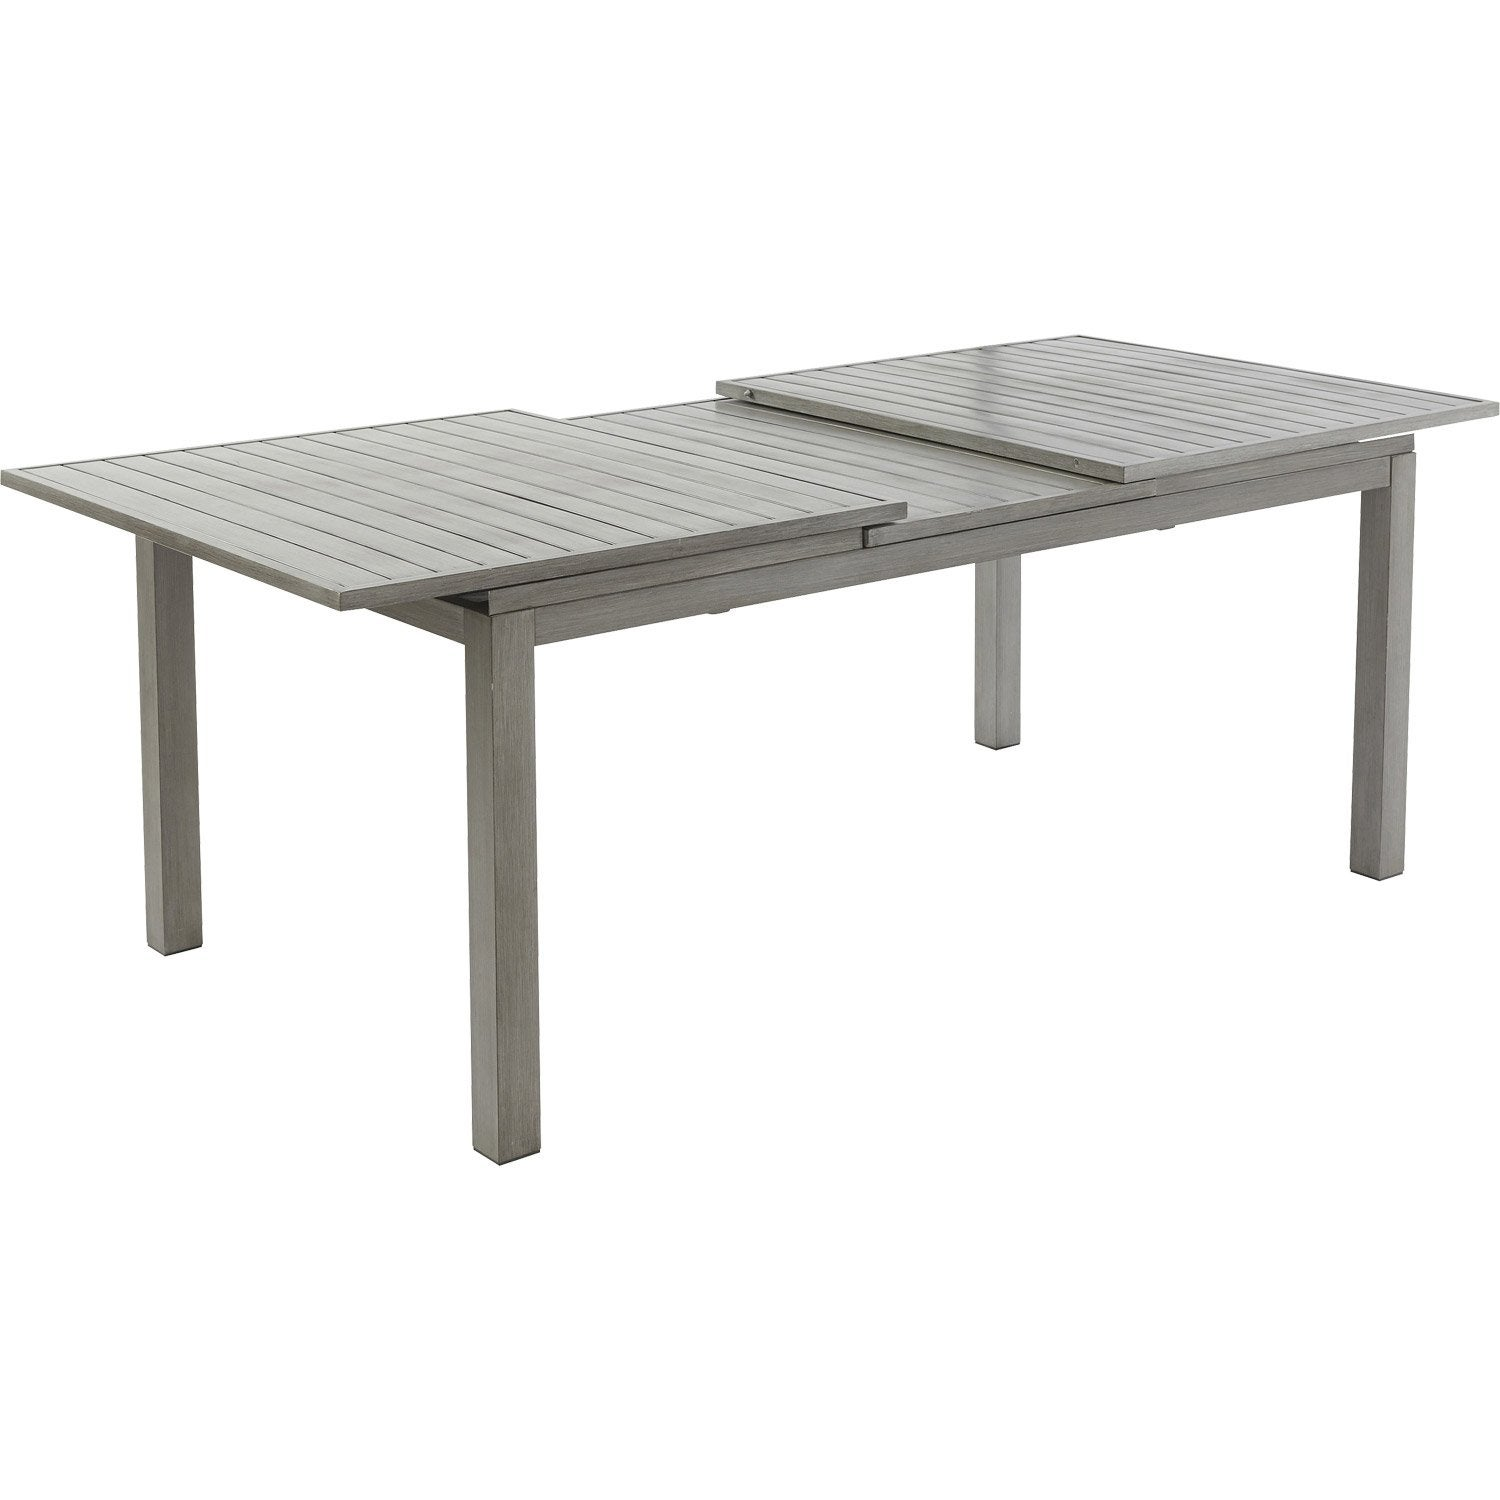 Table De Jardin Avec Extension Rectangulaire Aluwood Naterial Leroy Merlin